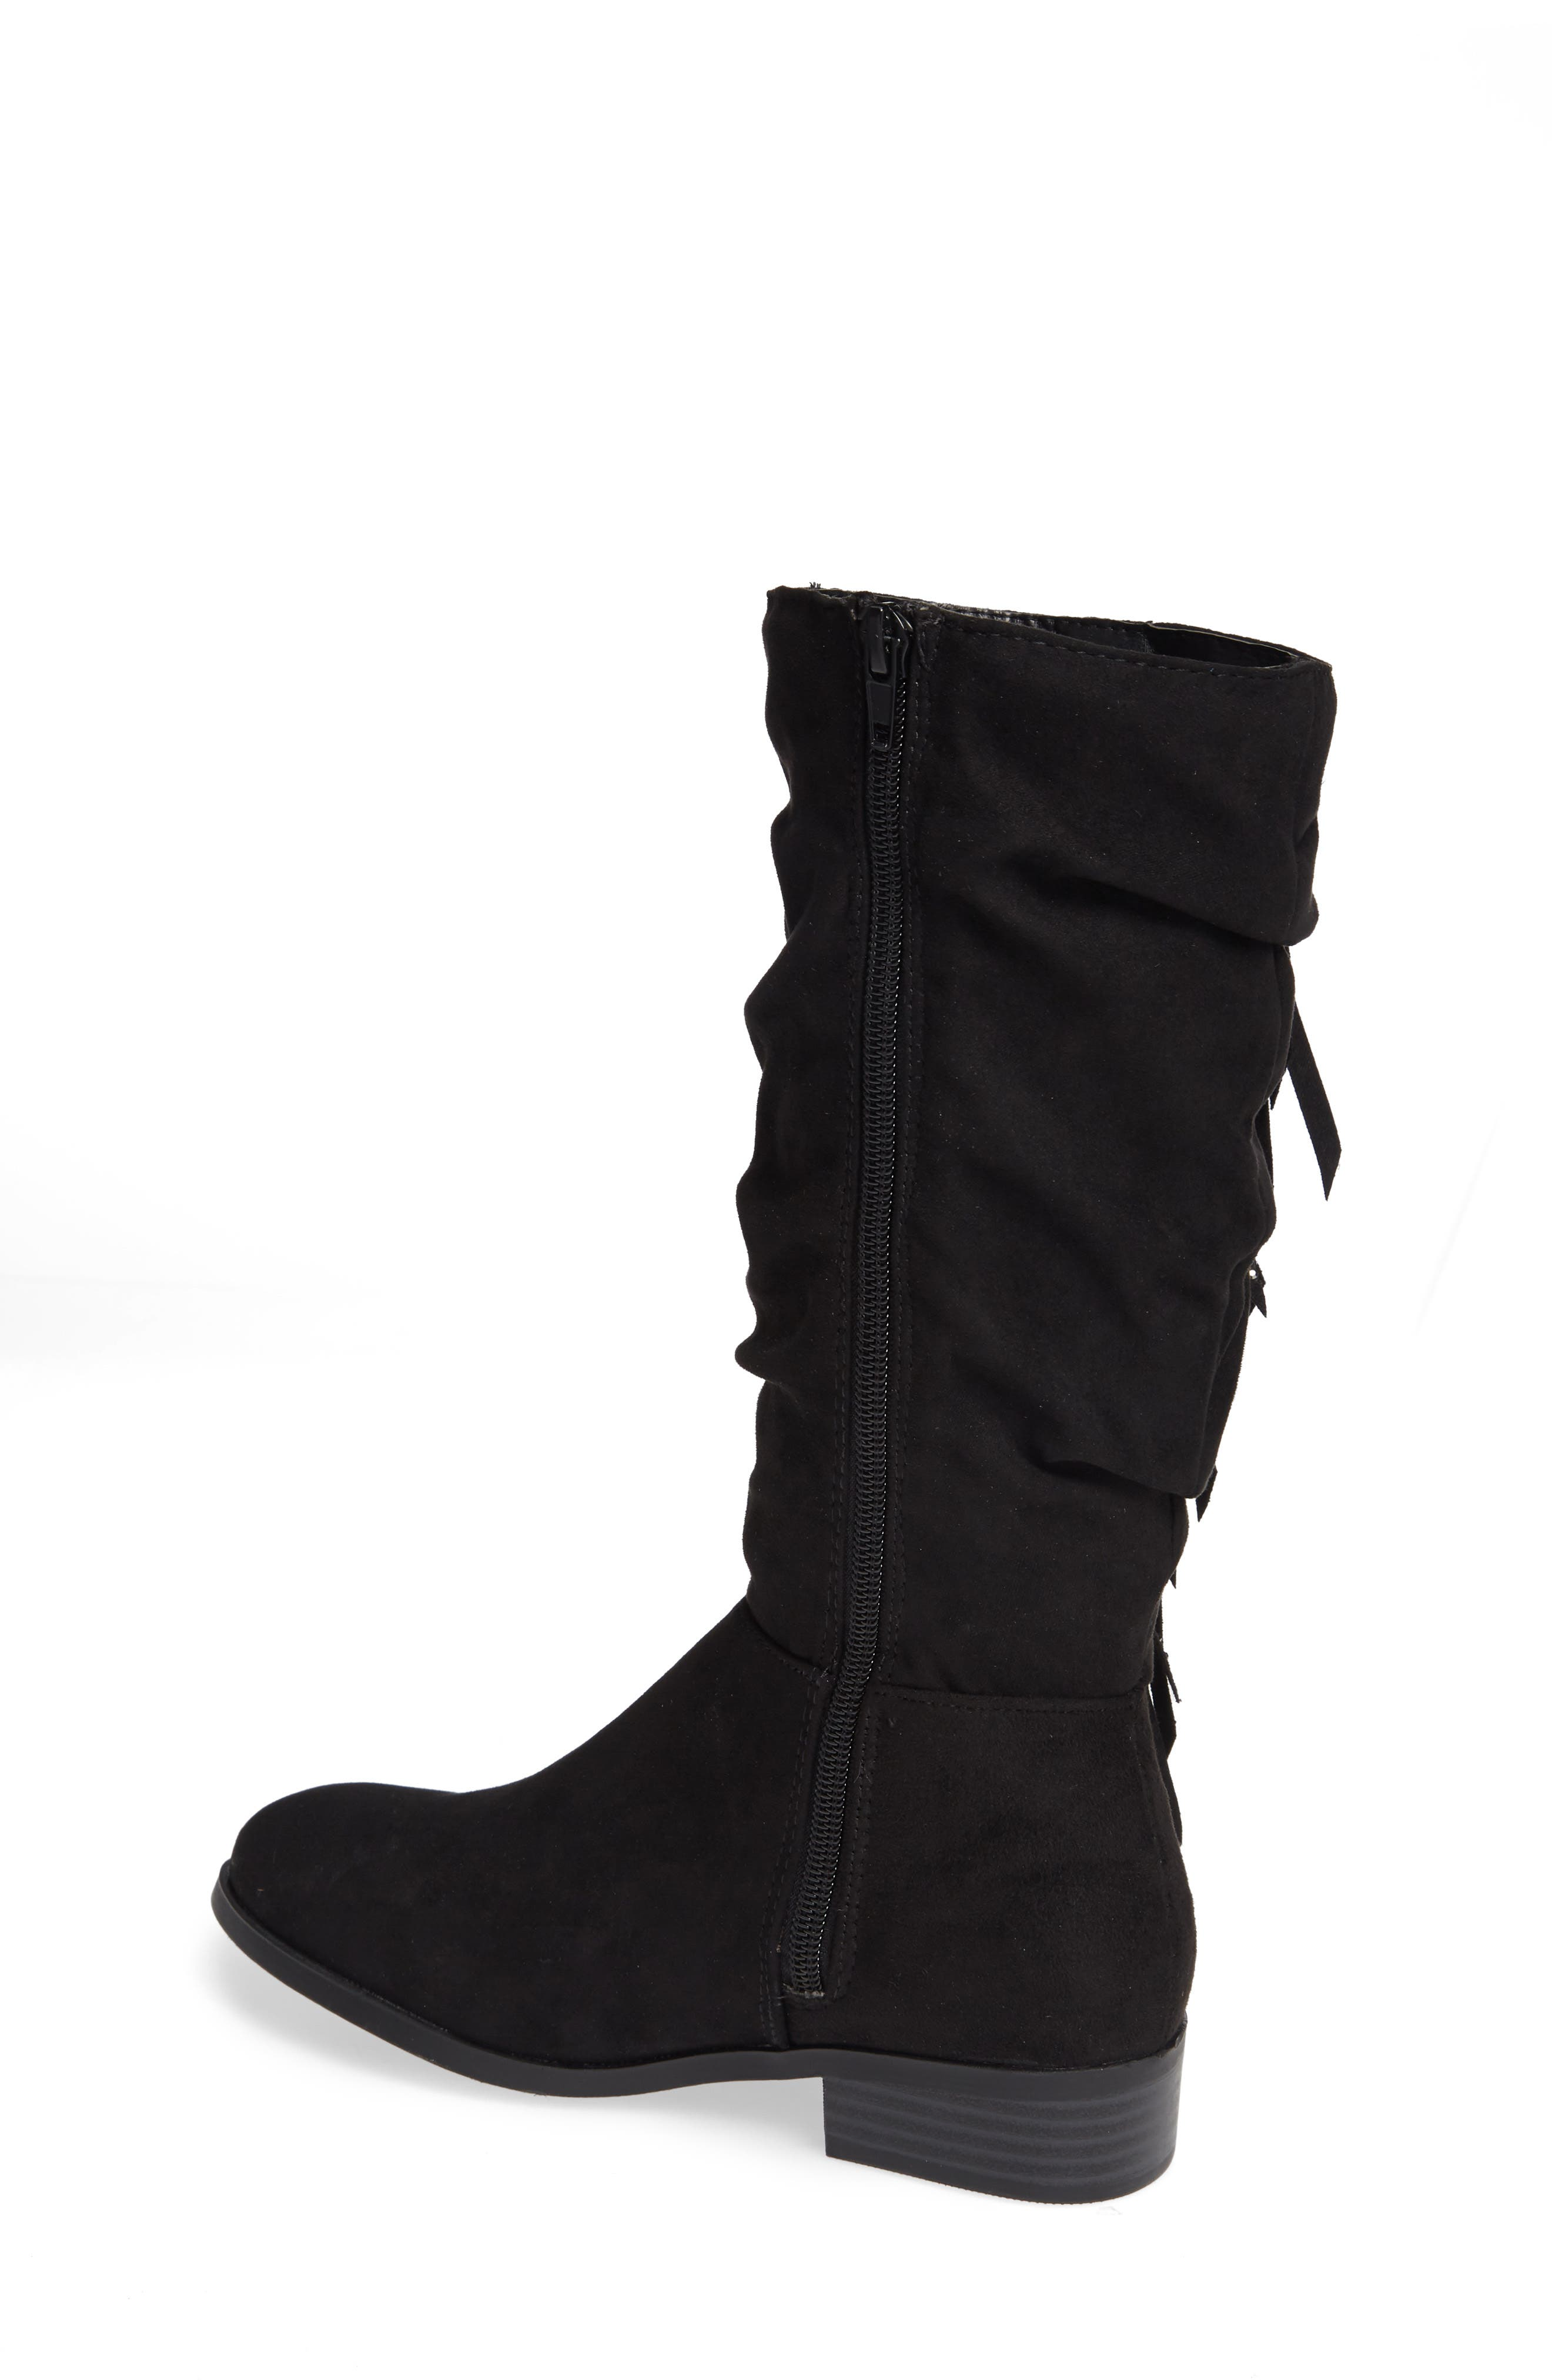 Jfringly Slouchy Fringed Boot,                             Alternate thumbnail 2, color,                             BLACK MICRO